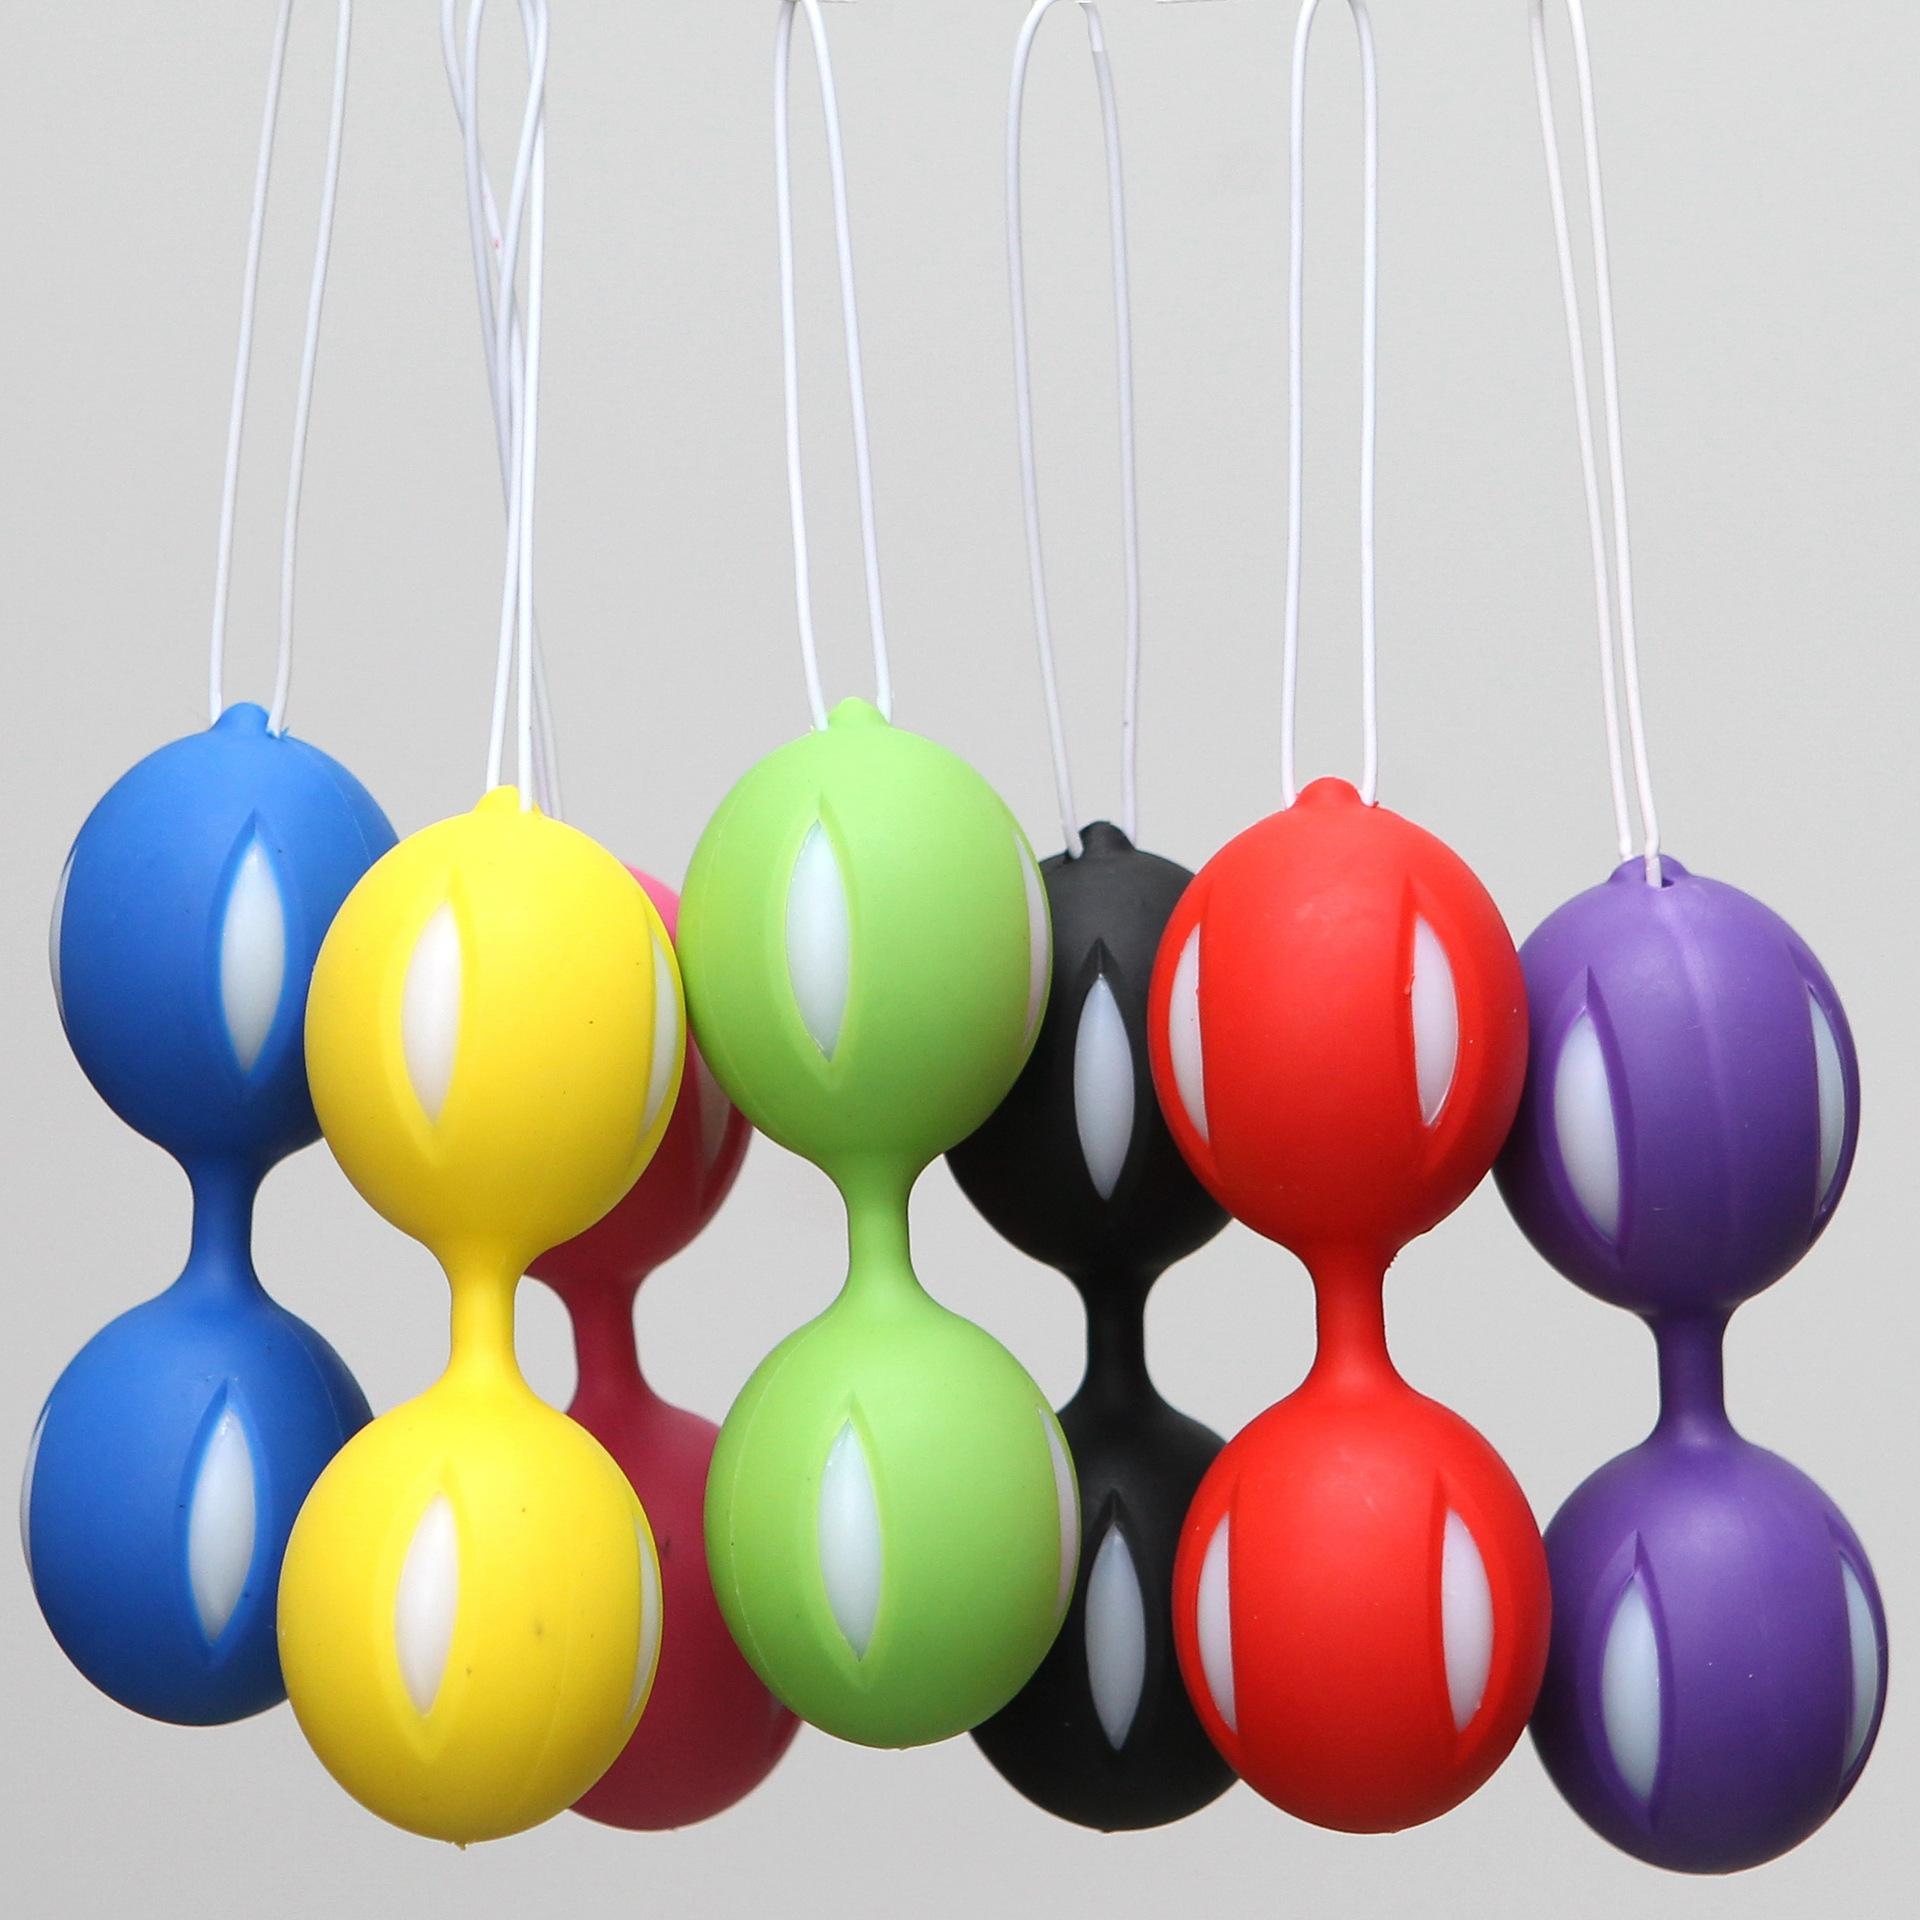 Hot Selling Women Sex Toy Silicone Kegel Ball Vaginal Ball Anal Egg Vagina Exc